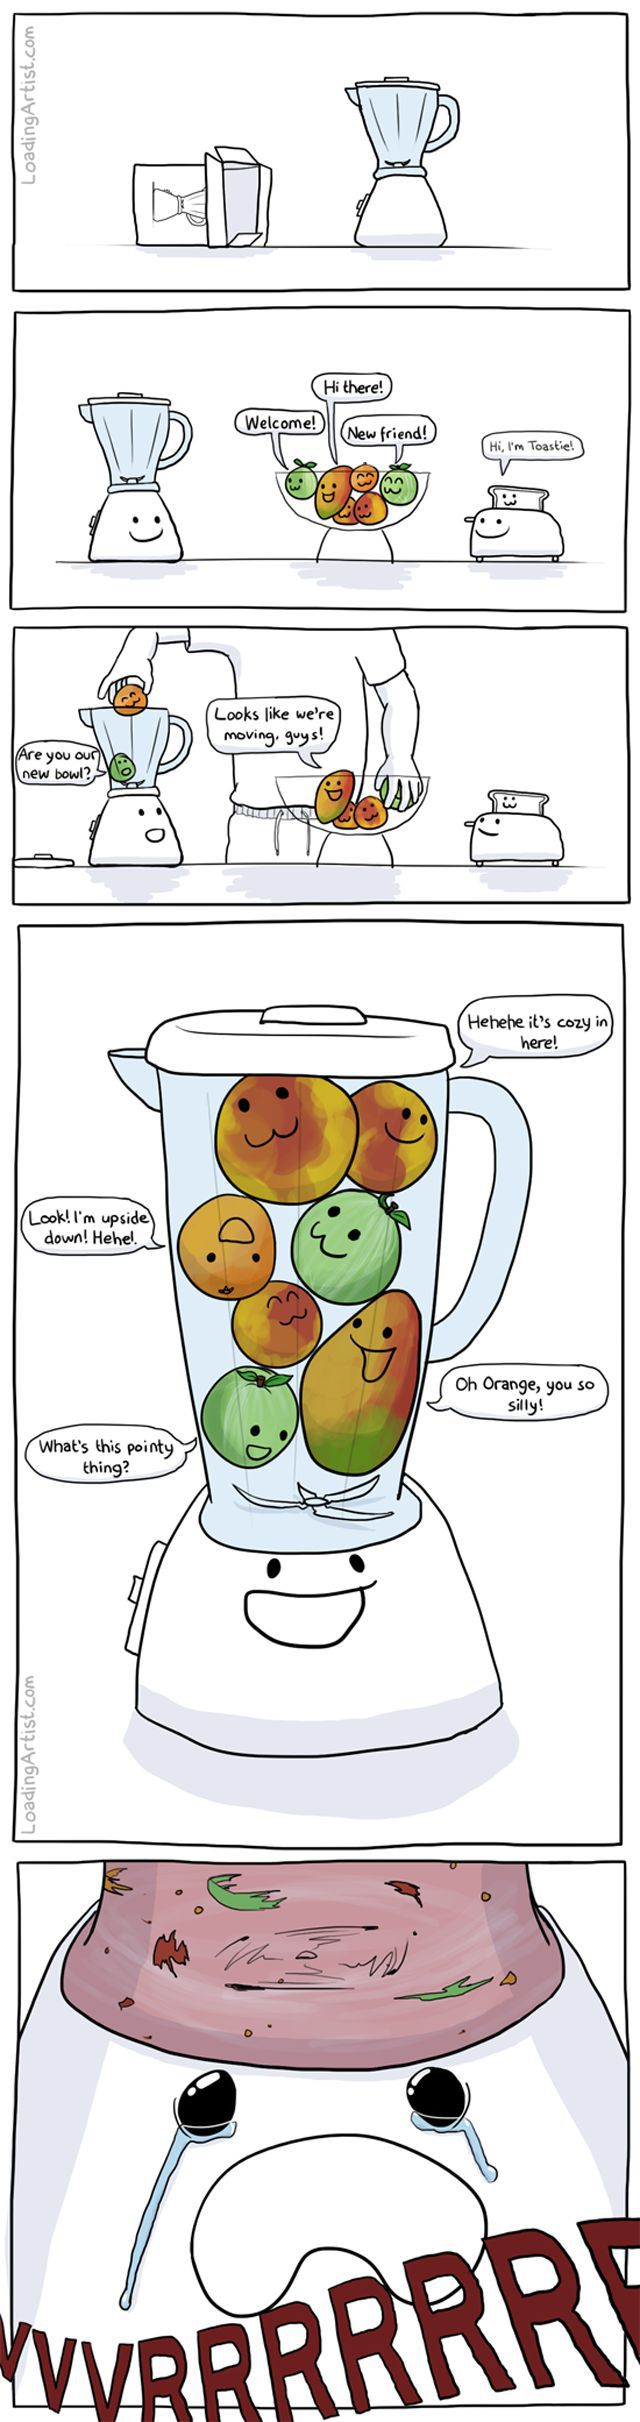 The Sad Story of a Blender